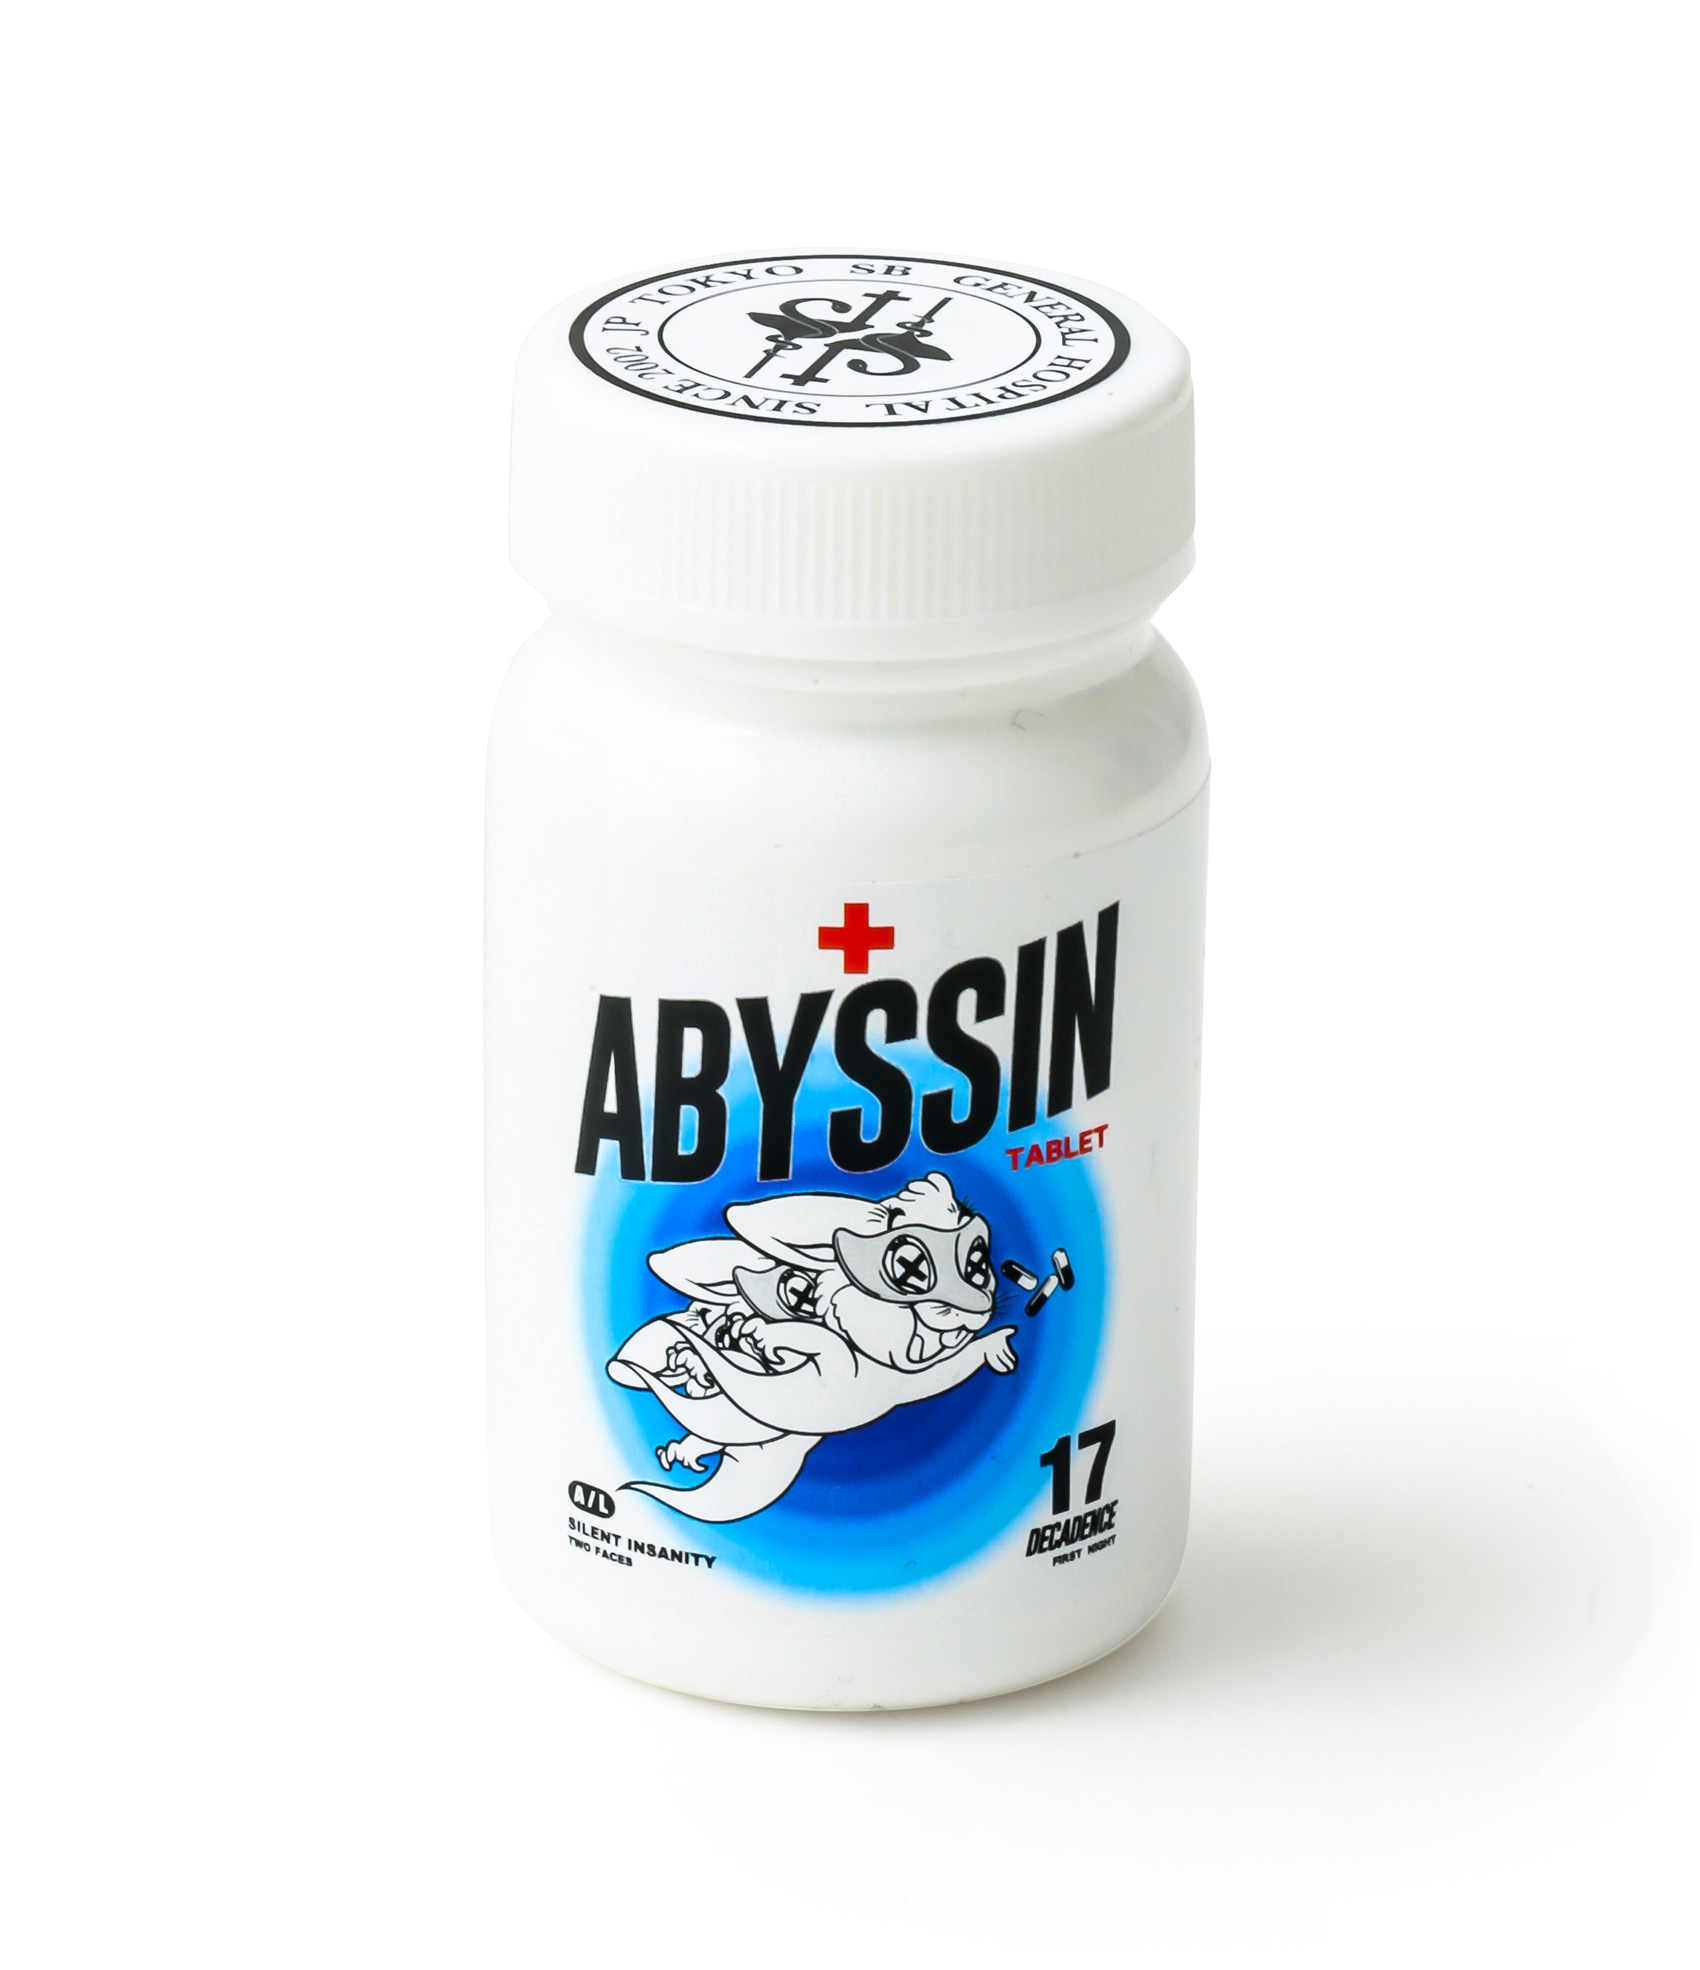 ABYSSIN TABLET